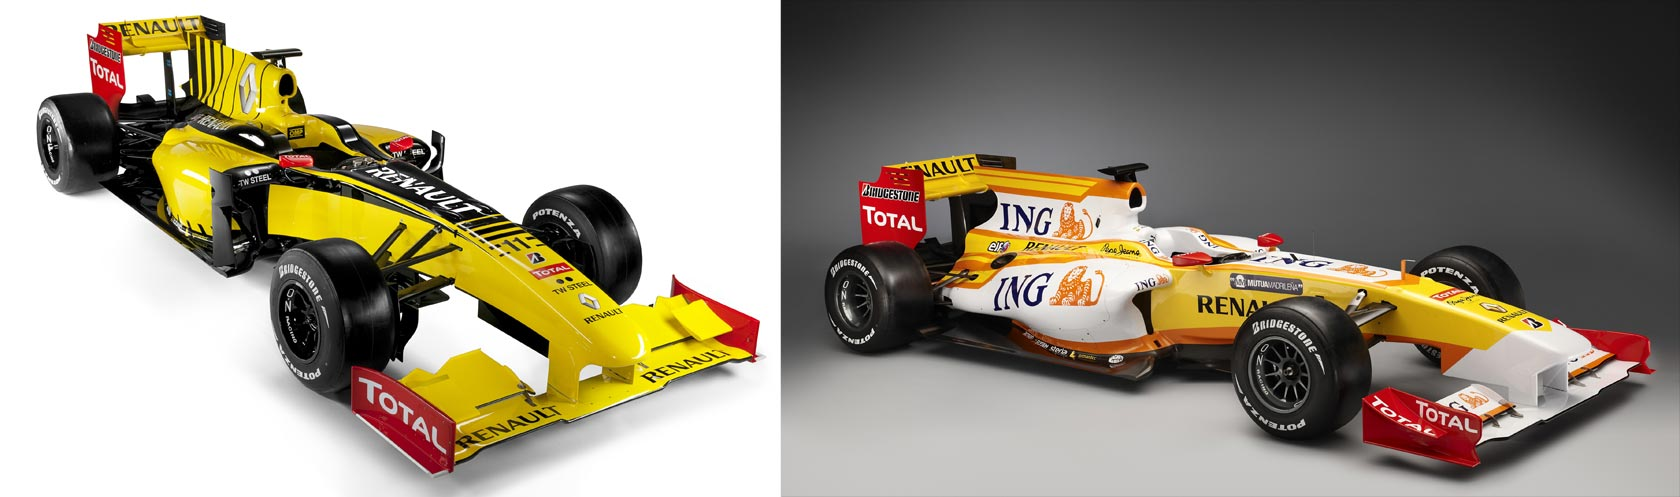 Renault r29 photo - 8